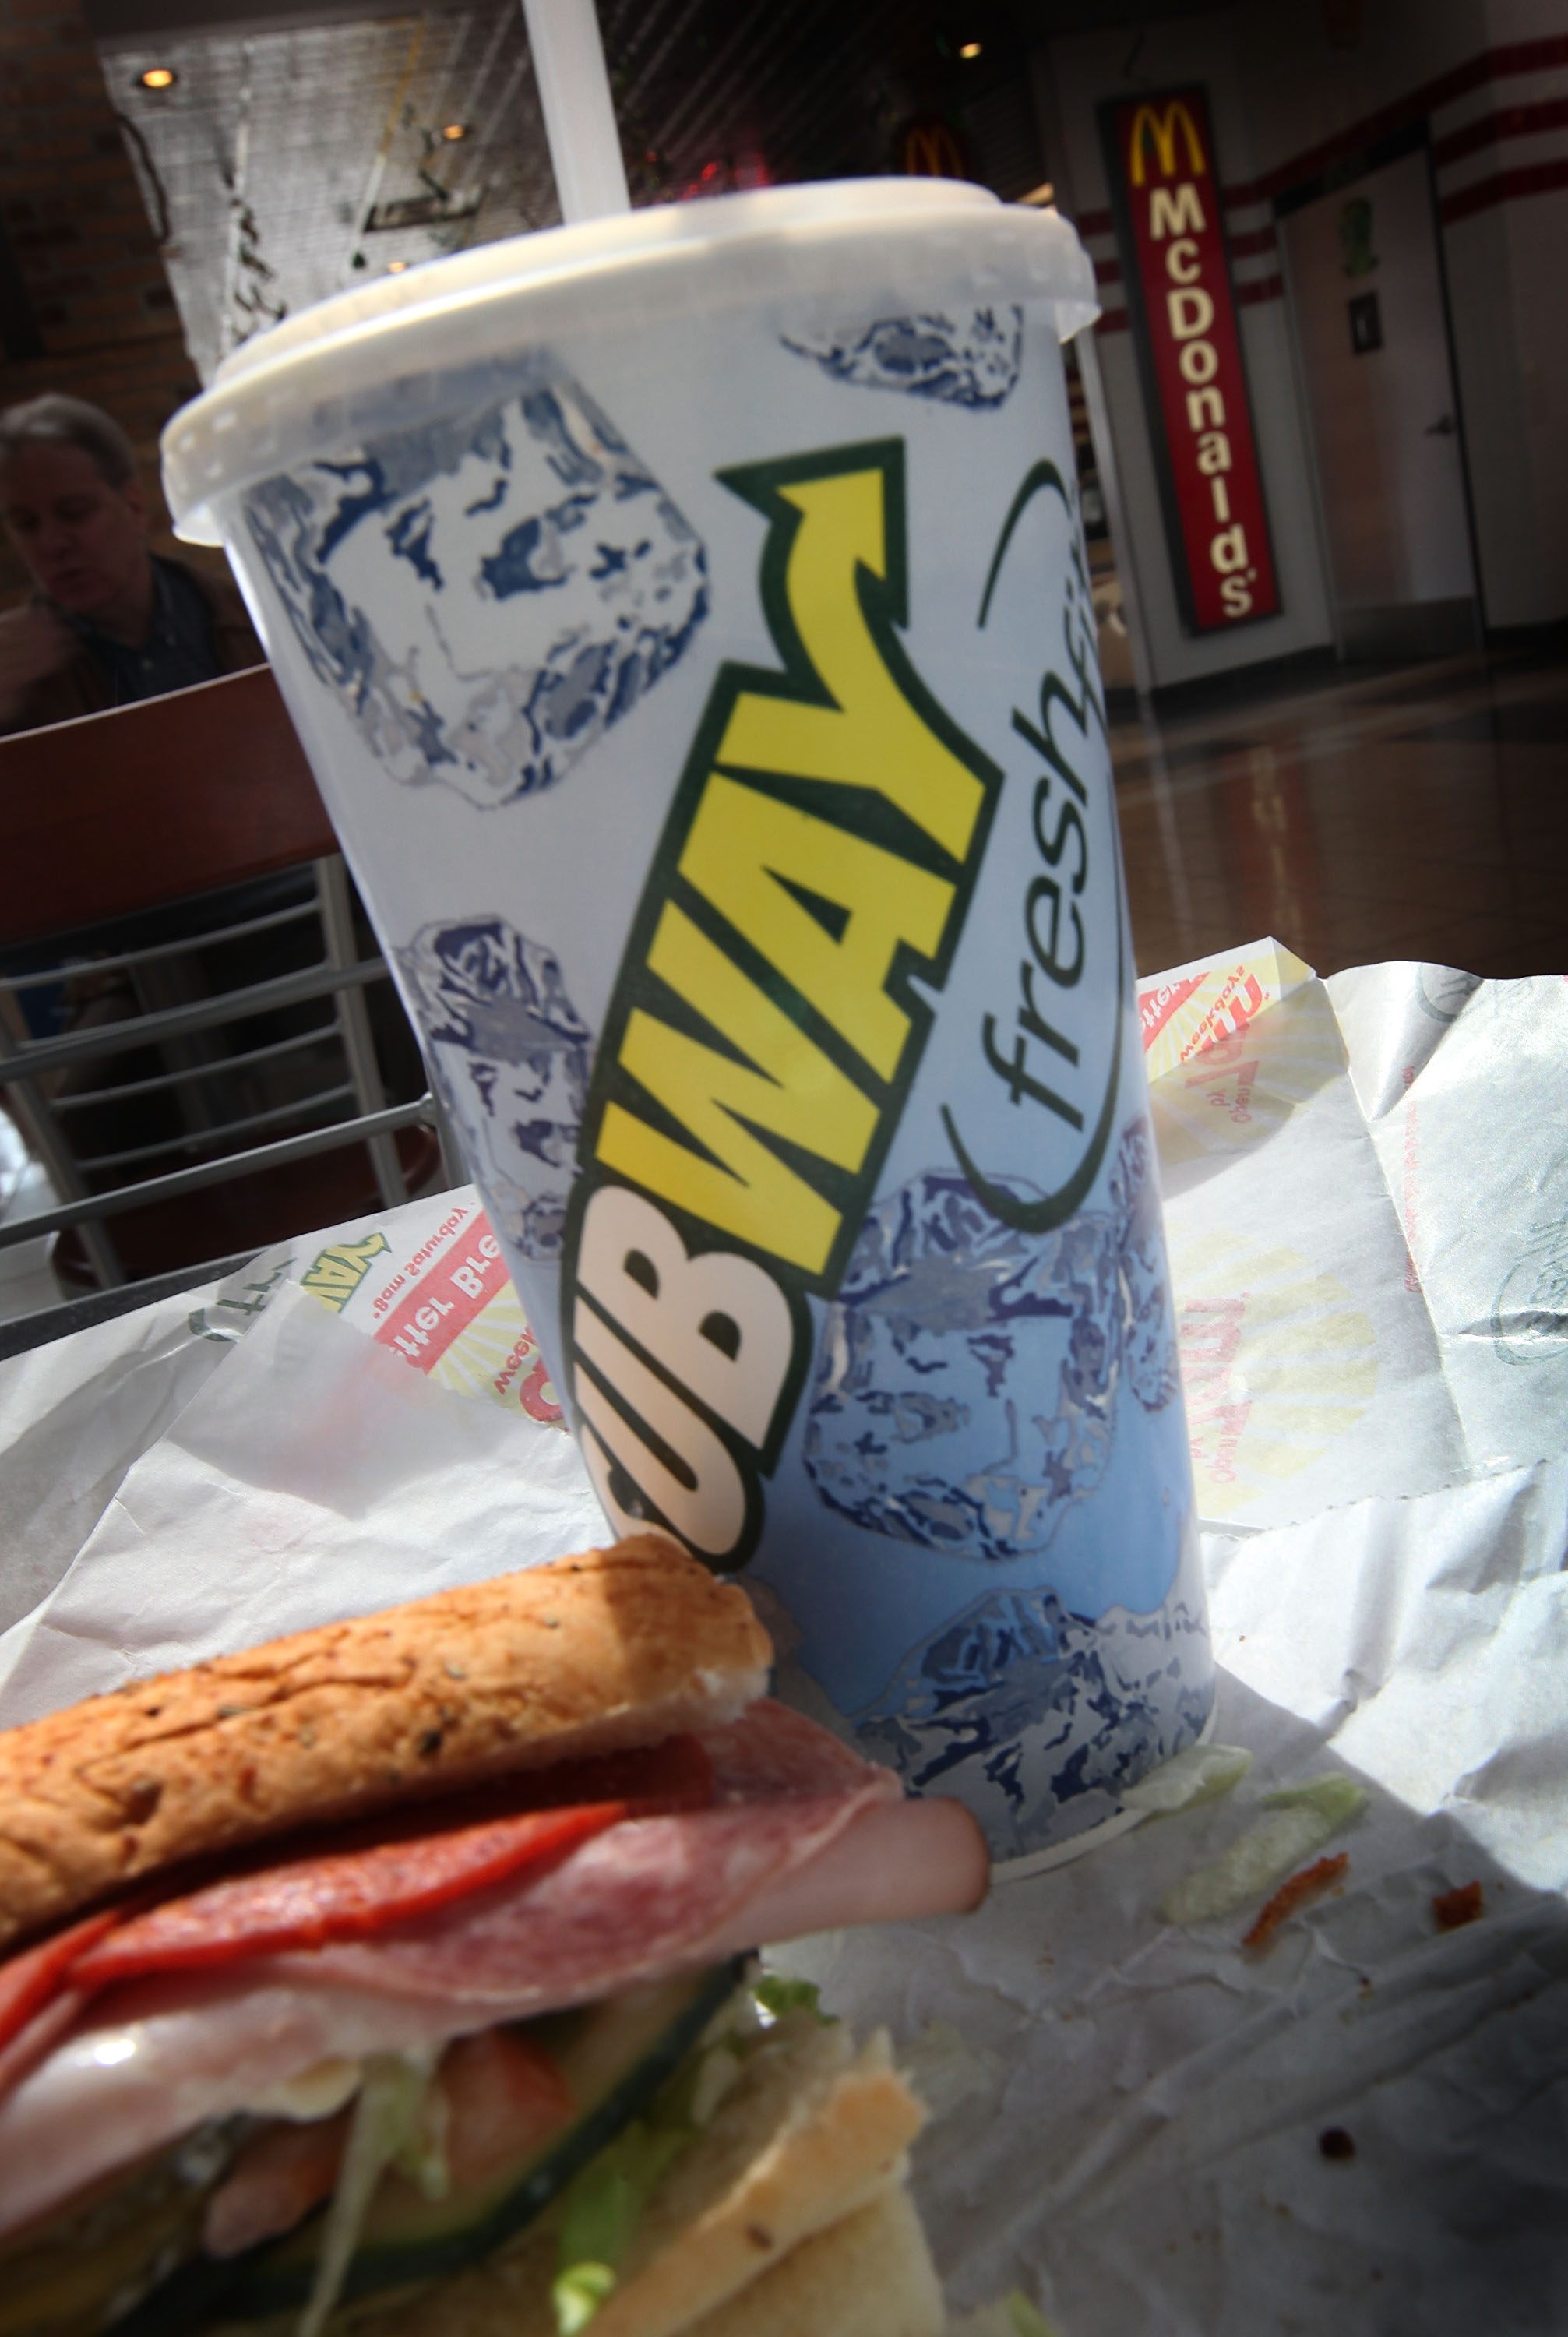 Subway Insider Reveals The Sandwiches You Should Never Eat GettyImages 109864787 1